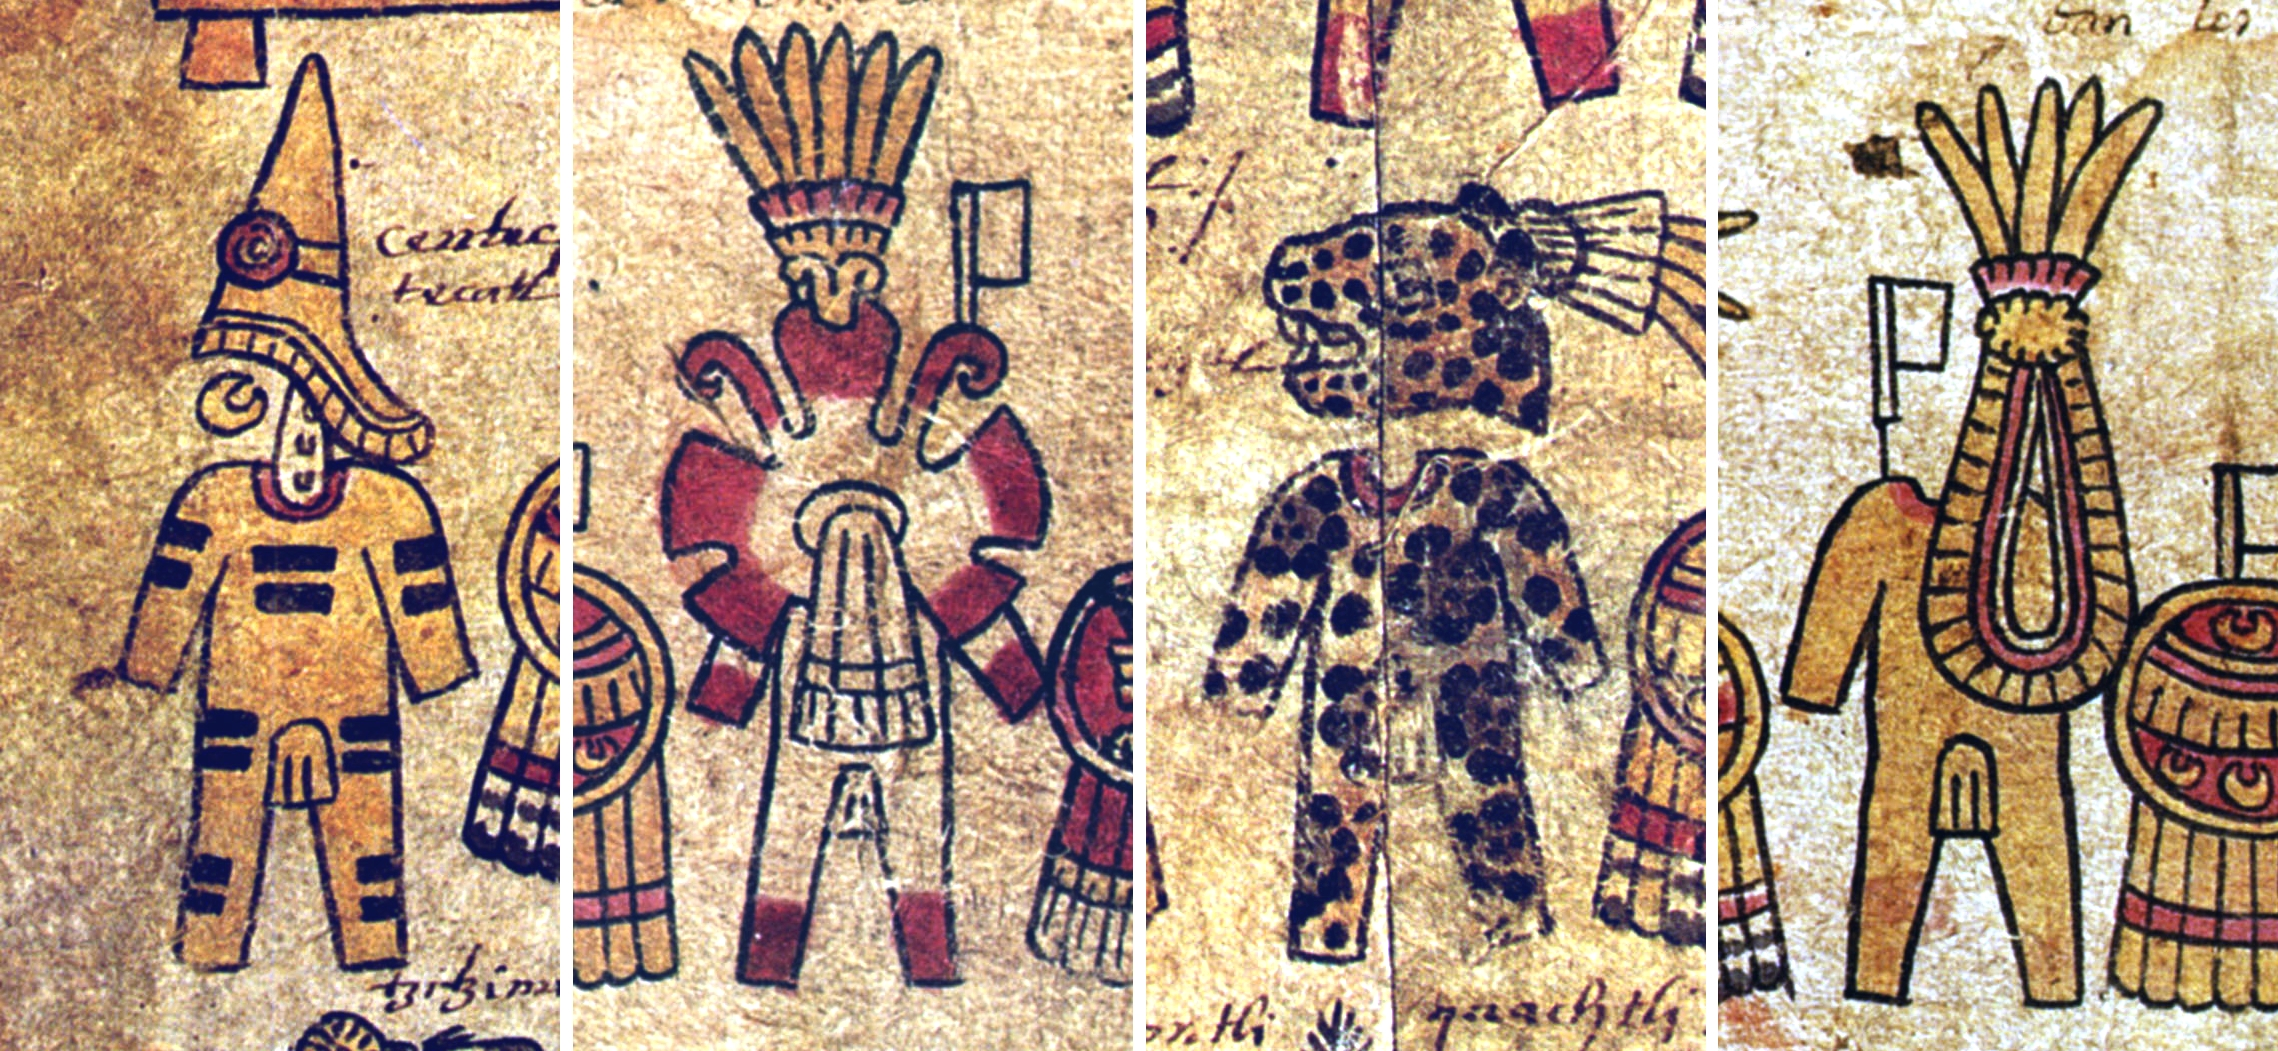 FIGURE 32. Four basic styles of warrior costume in the Matrícula de Tributos. From left to right, Huaxtec (folio 3r), Butterfly (folio 3v), Jaguar (folio 3v), and Claw (folio 3v).